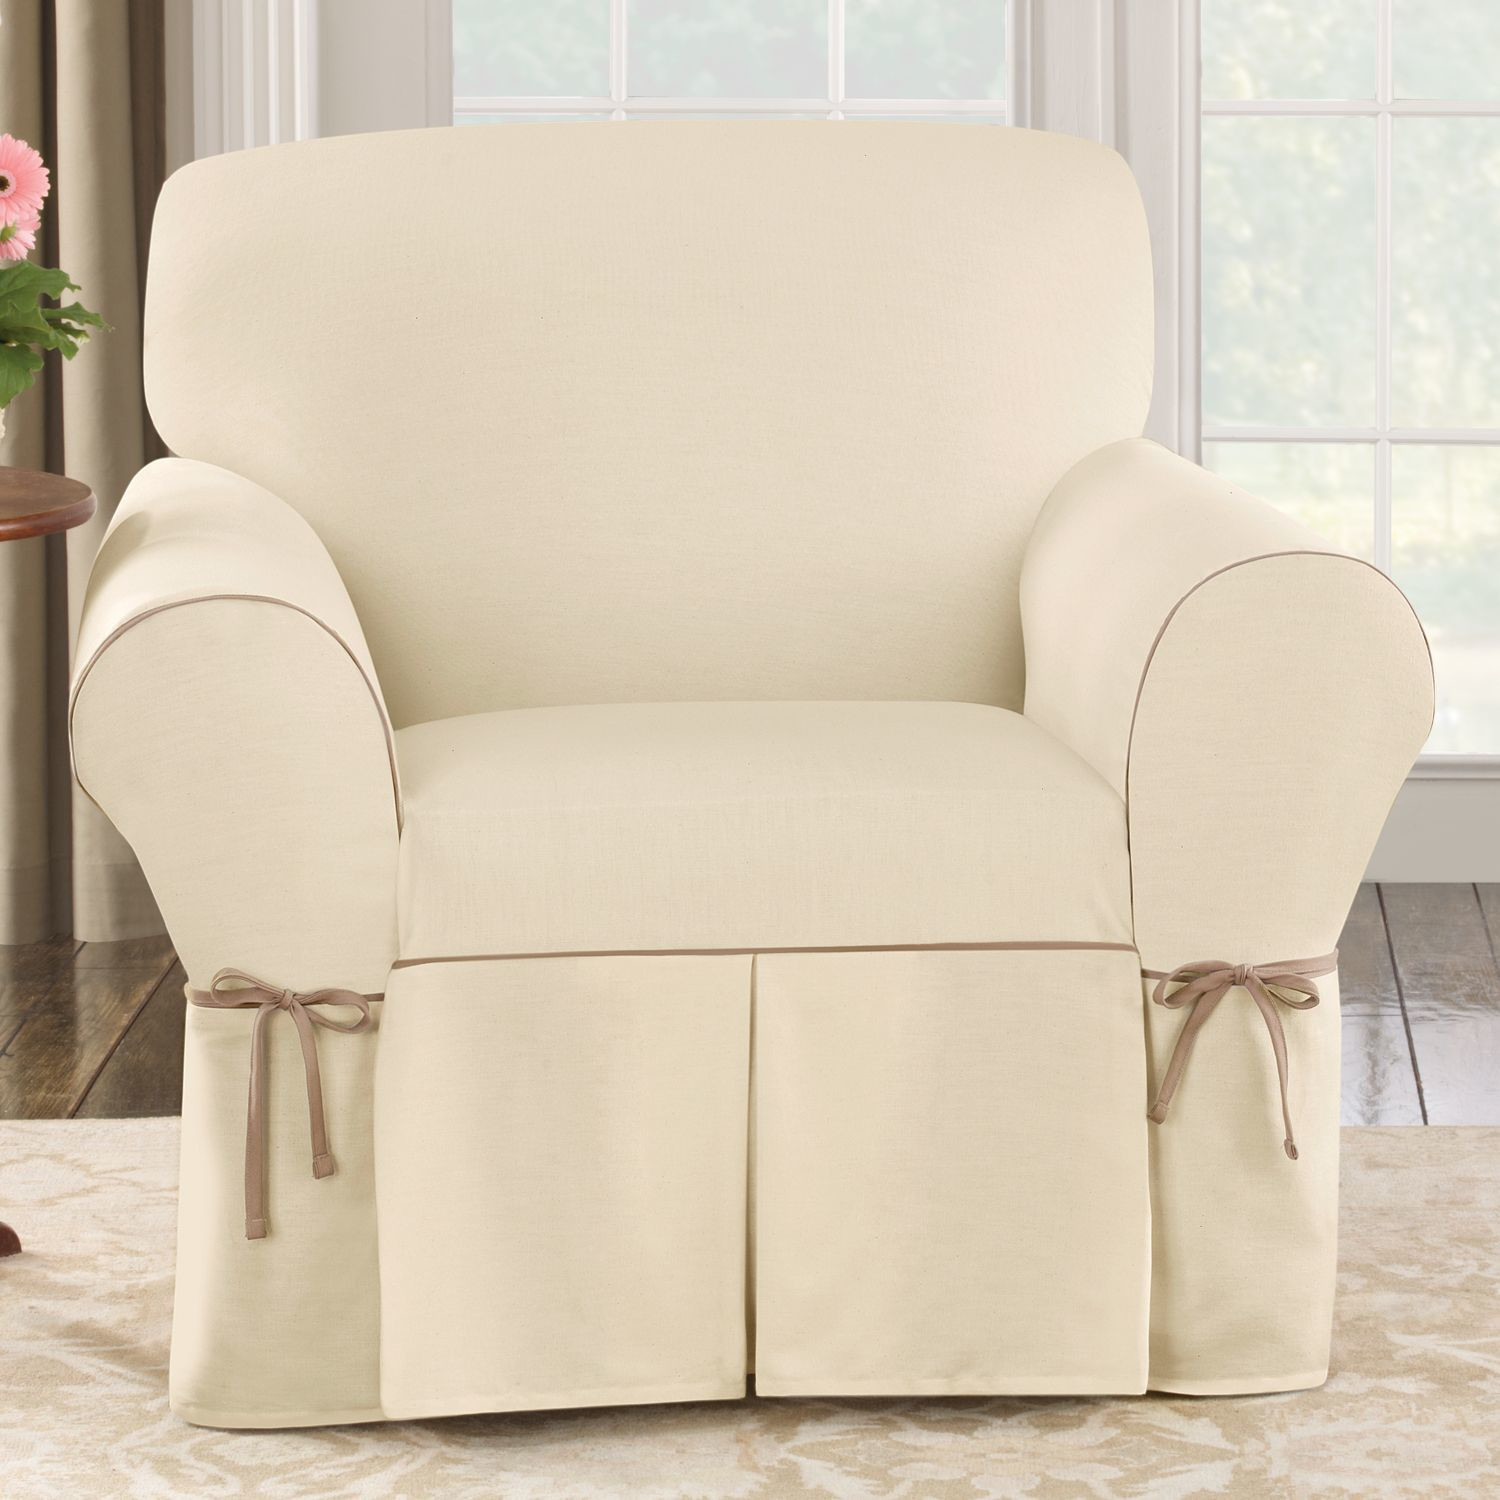 Best ideas about Surefit Chair Cover . Save or Pin Sure Fit Cotton Duck Club Chair Slipcover & Reviews Now.